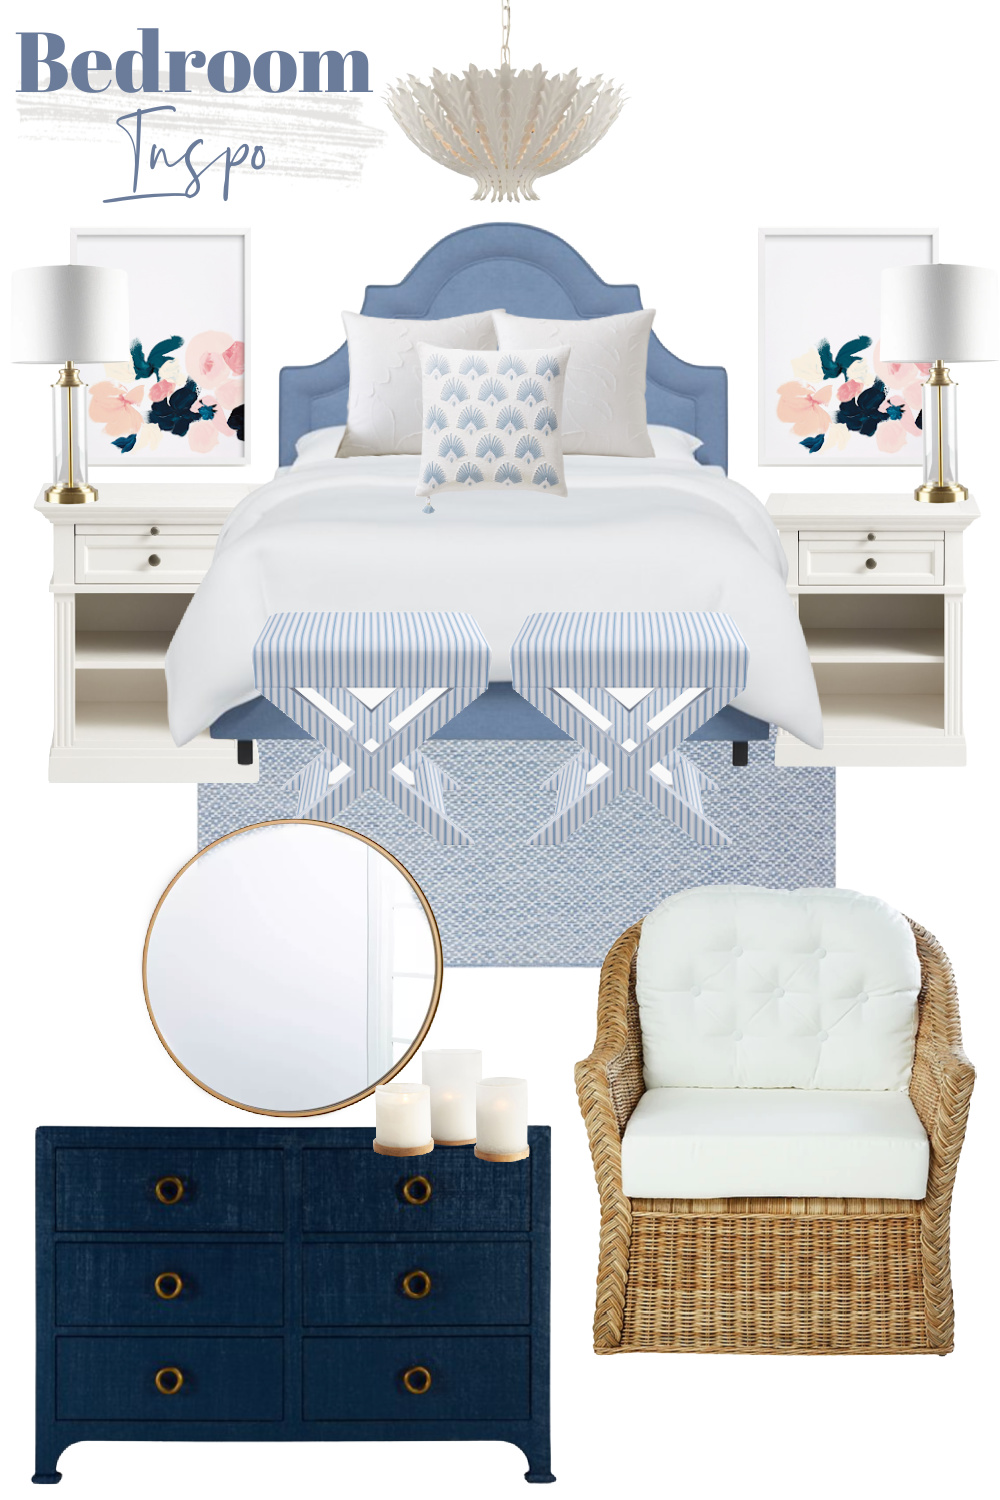 Blue Bedroom | Coastal Bedroom | Navy and Pink Bedroom | Light Blue Bed | X-Benches | Rattan Armchair | Serena and Lily | Blue Dresser | Round Brass Mirror | White Nightstand